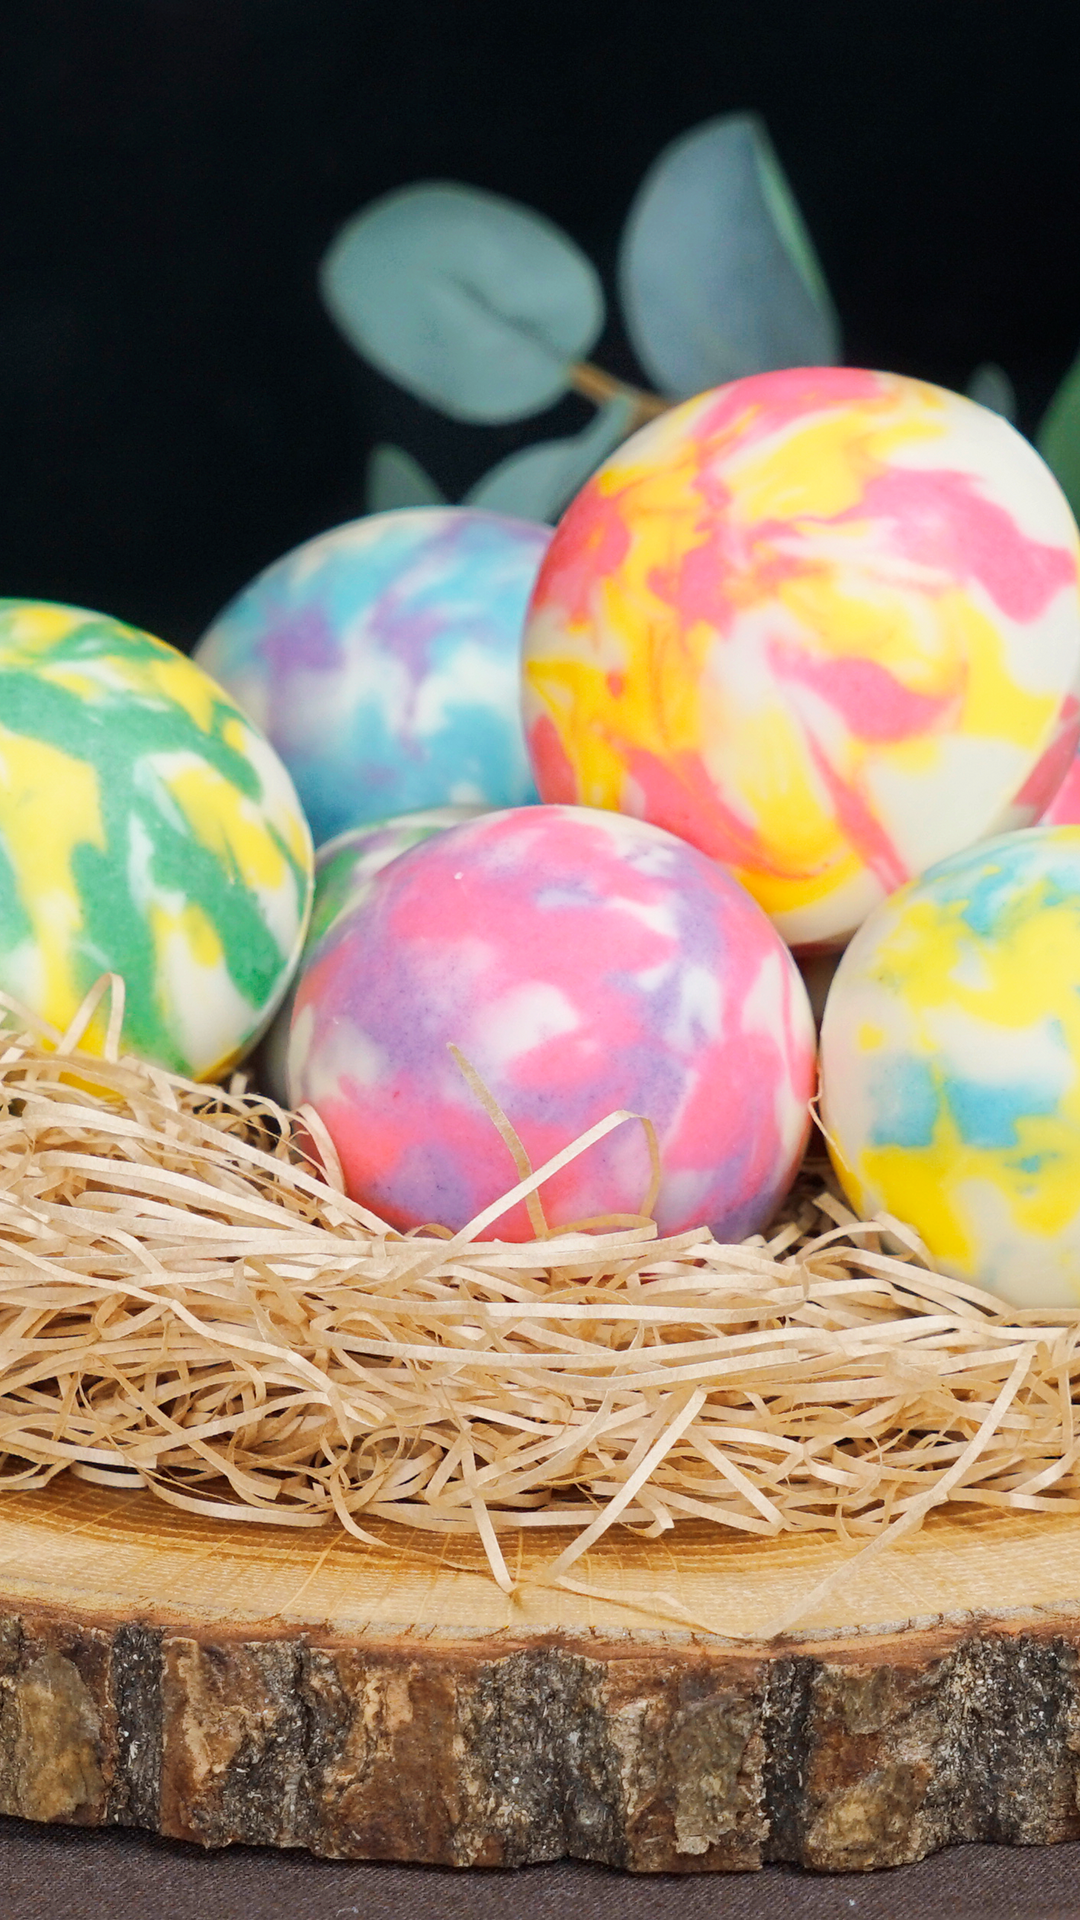 We can't get enough of marble! Marble floors. Marble countertops. Marble cheeseboards. Celebrate Easter with these Marble Chocolate Eggs!